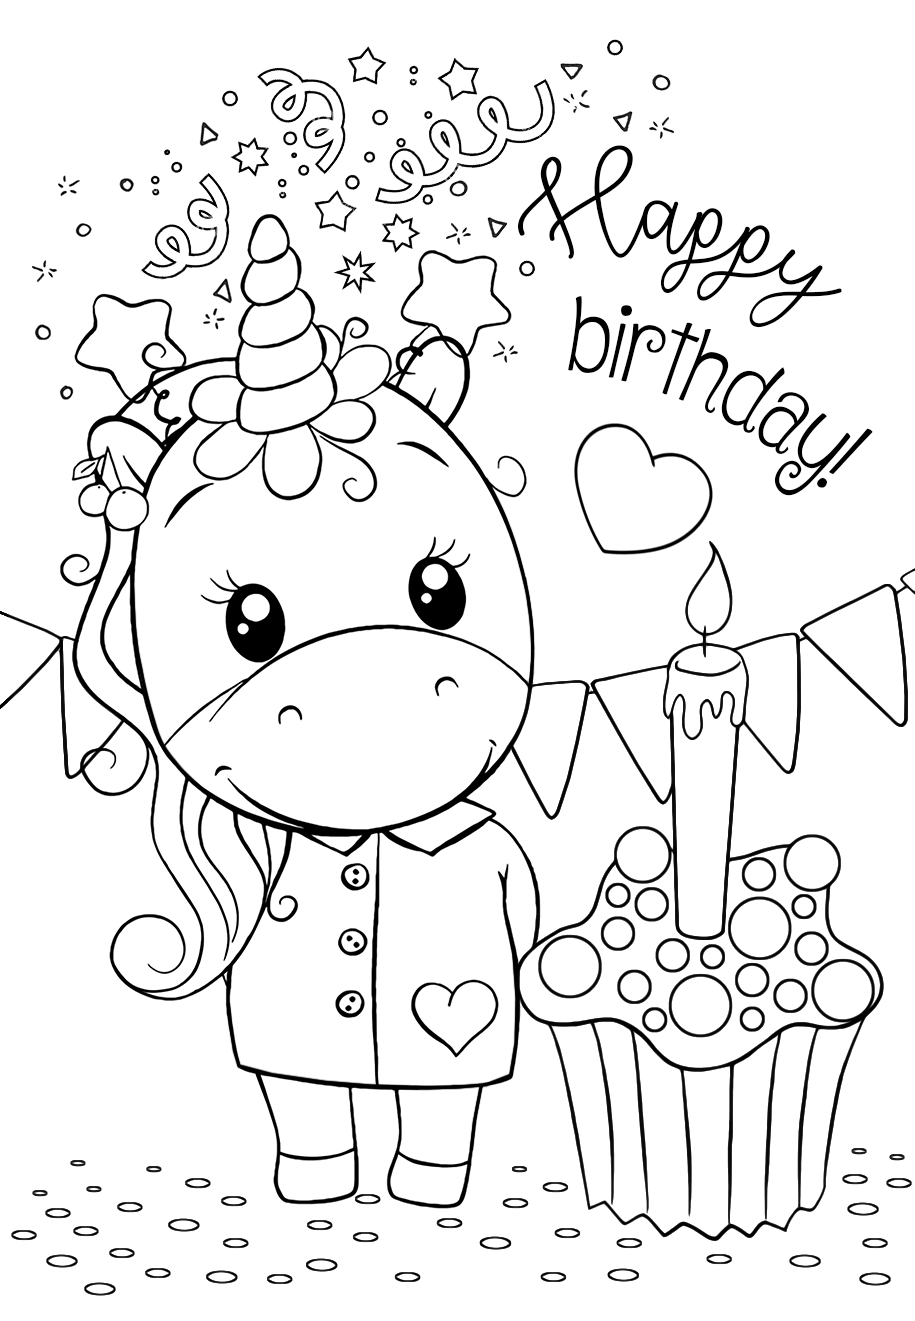 unicorn cupcakes coloring pages unicorn happy birthday coloring pages for you unicorn pages cupcakes coloring